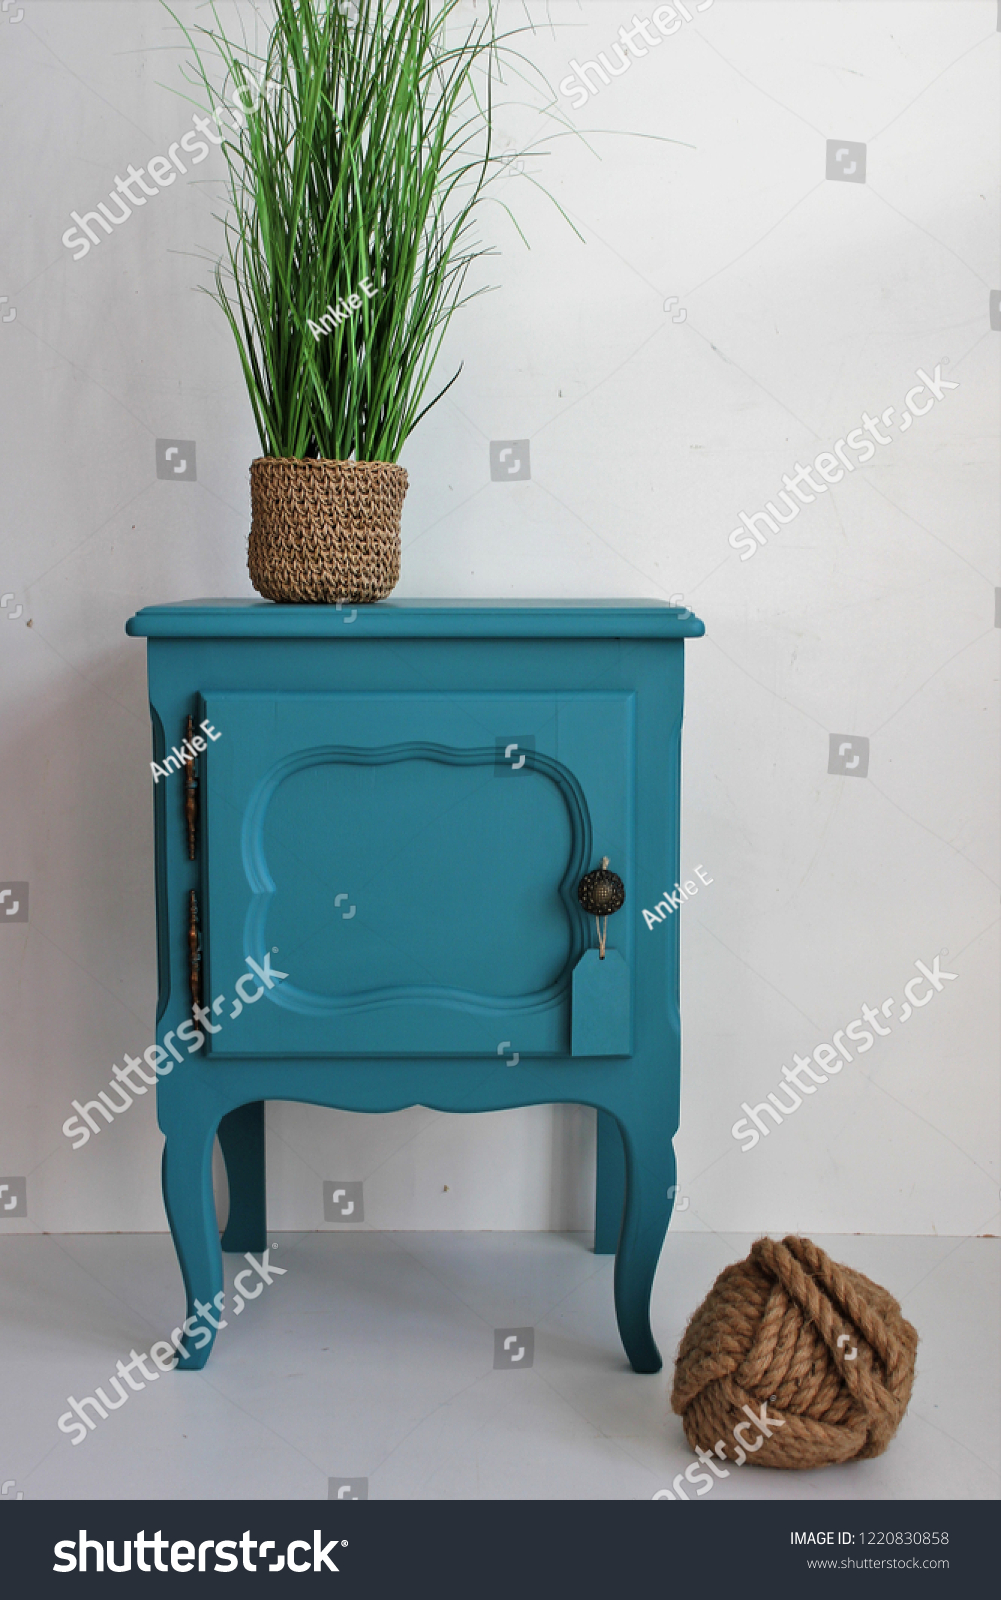 Bedside Table Vintage Blue Green Plant Stock Photo Edit Now 1220830858